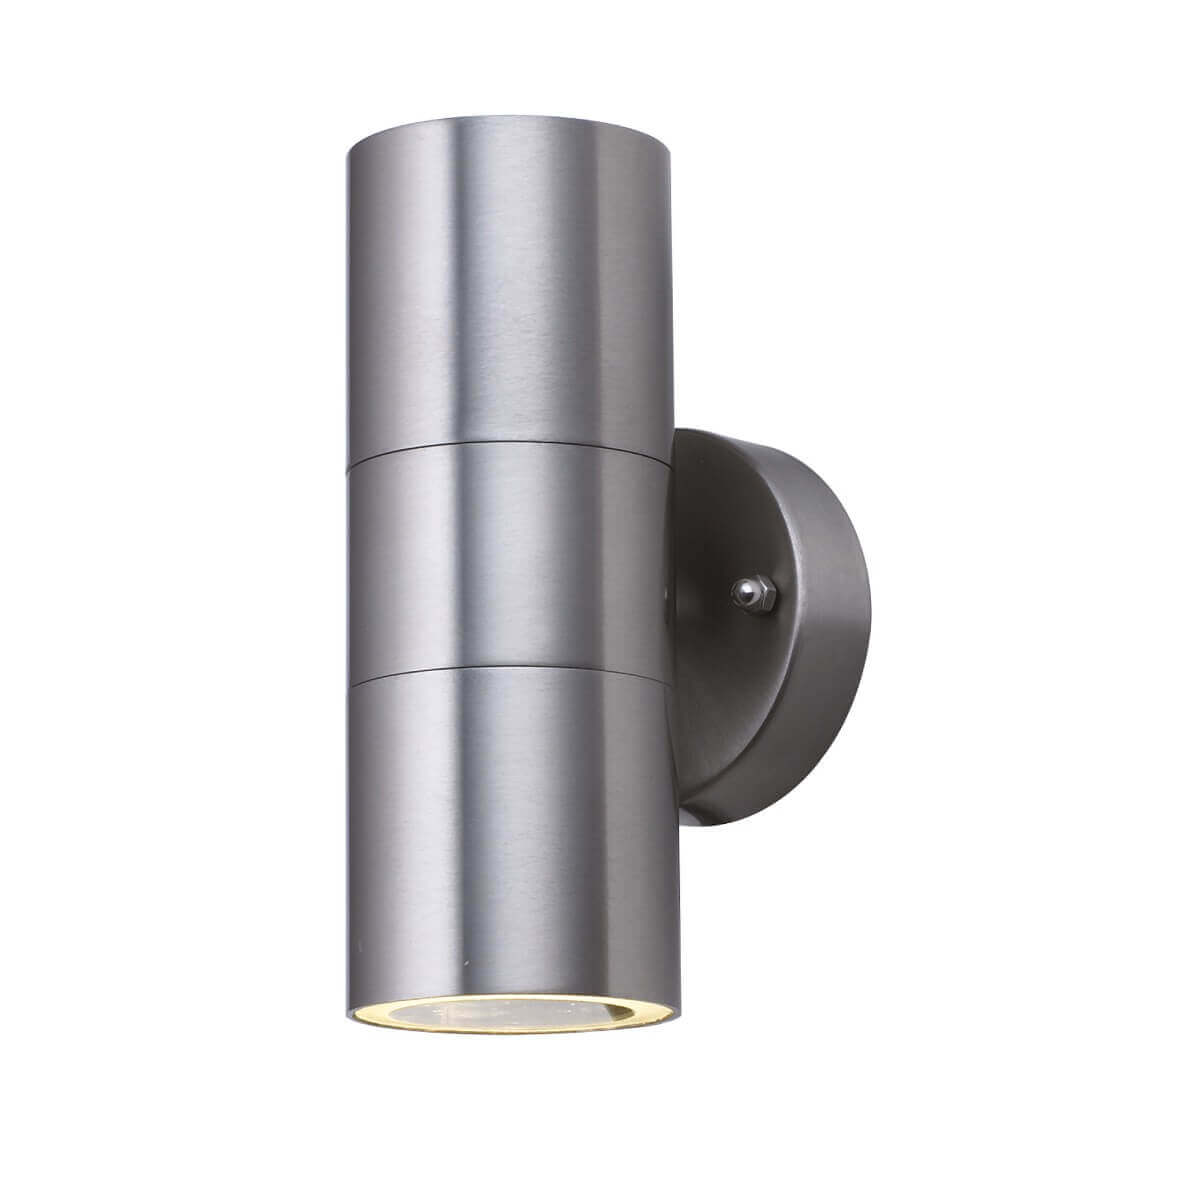 Searchlight OUTDOOR PORCH GU10 LED WALL 2 LIGHT STAINLESS STEEL TUBE 5008 01